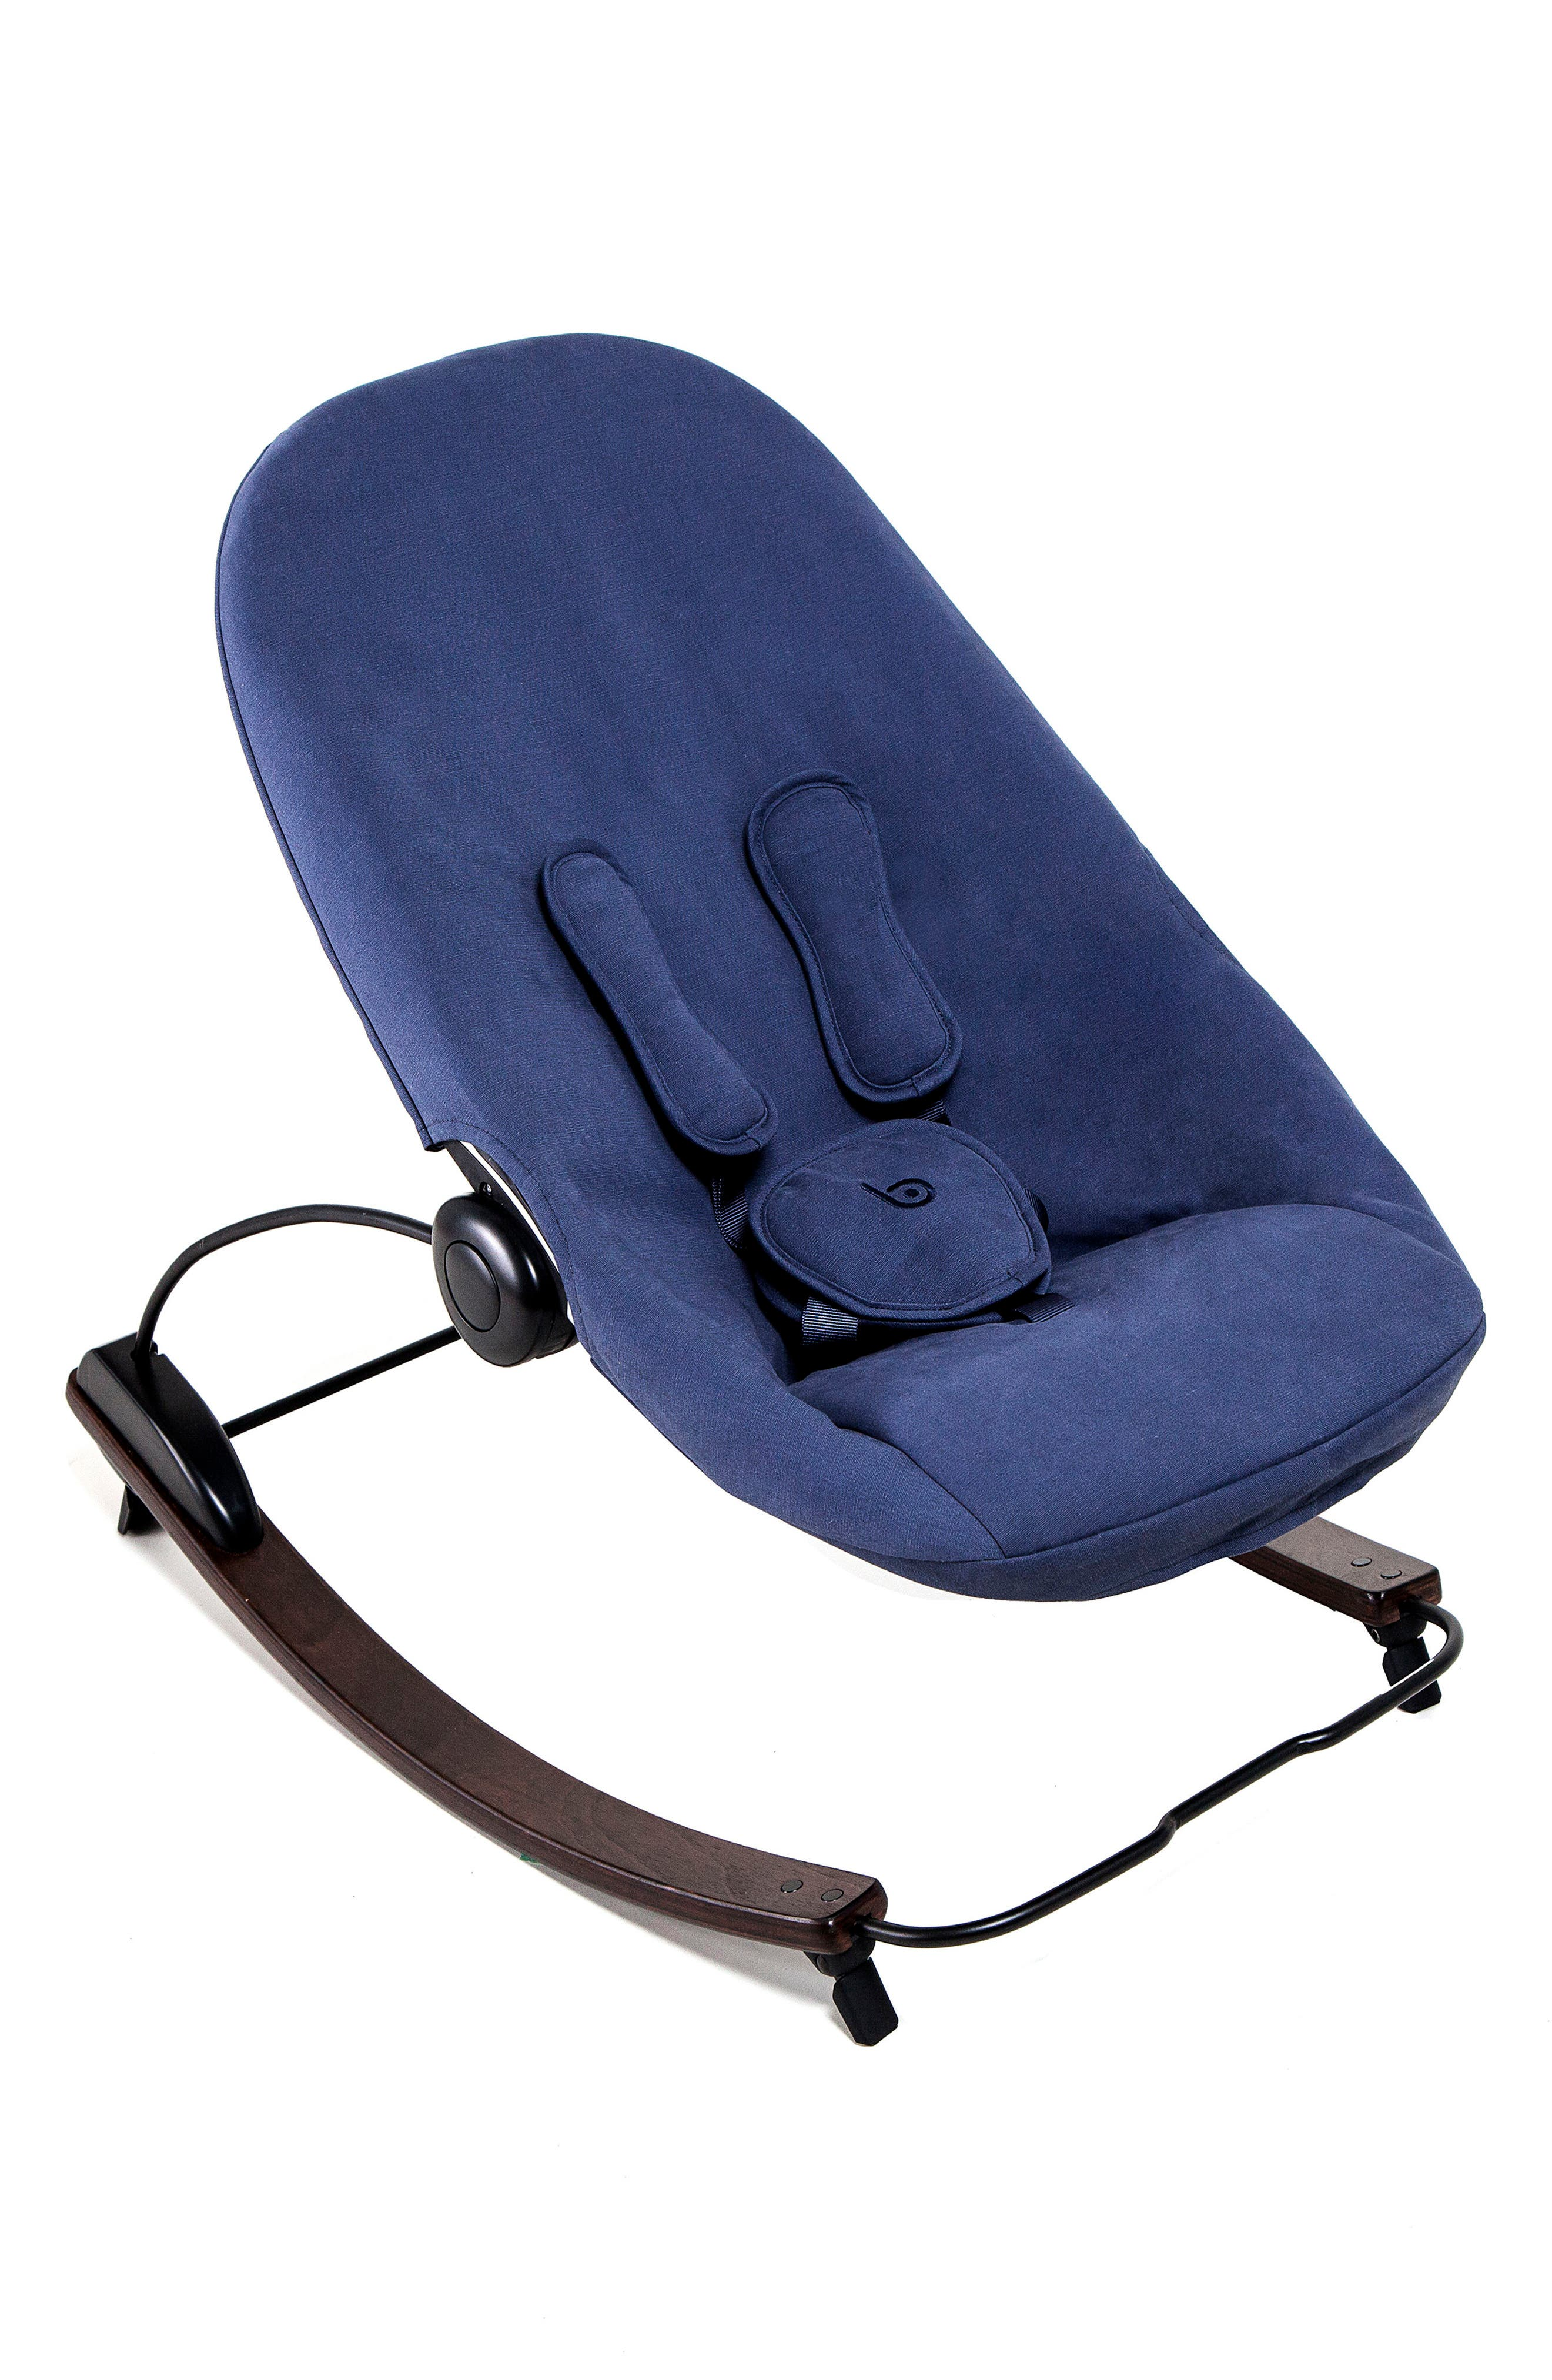 Coco Go 3-in-1 Infant Lounger,                         Main,                         color, Cappuccino/ Blue